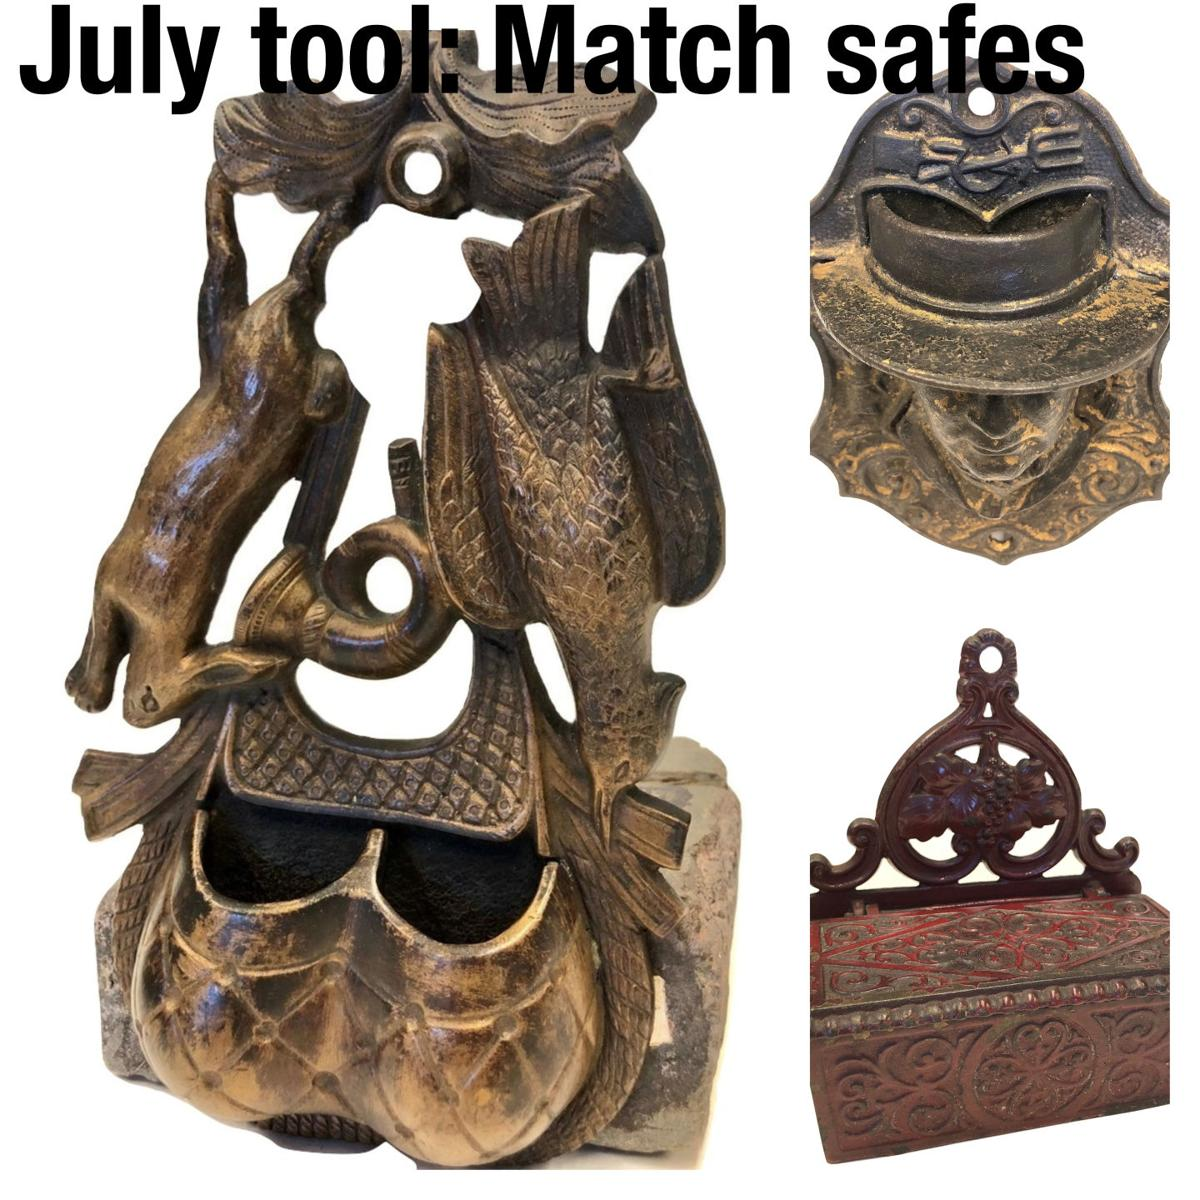 Check out this month's Antique Toolbox challenge: Can we